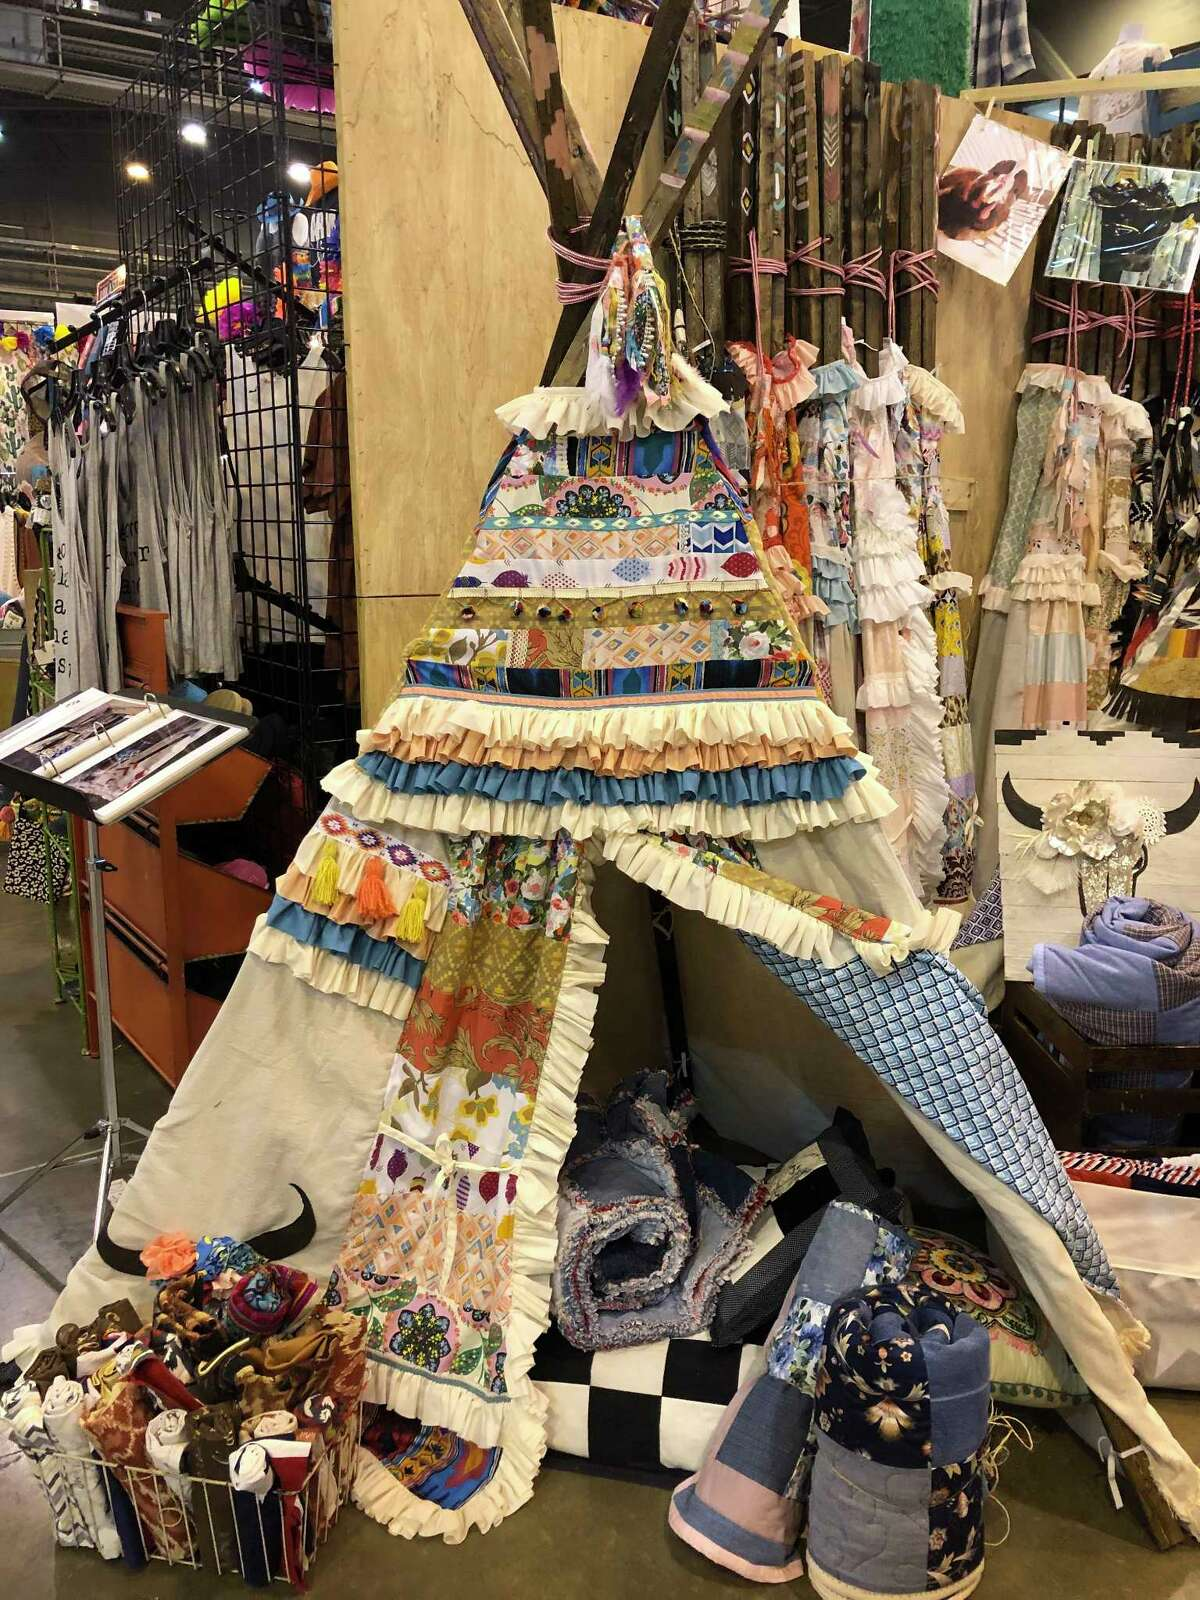 Jodi HatfieldÂ?'s dolly estelle teepees in the Cowboy Crossing shopping area at NRG Center at the 2018 Houston Livestock Show and Rodeo.